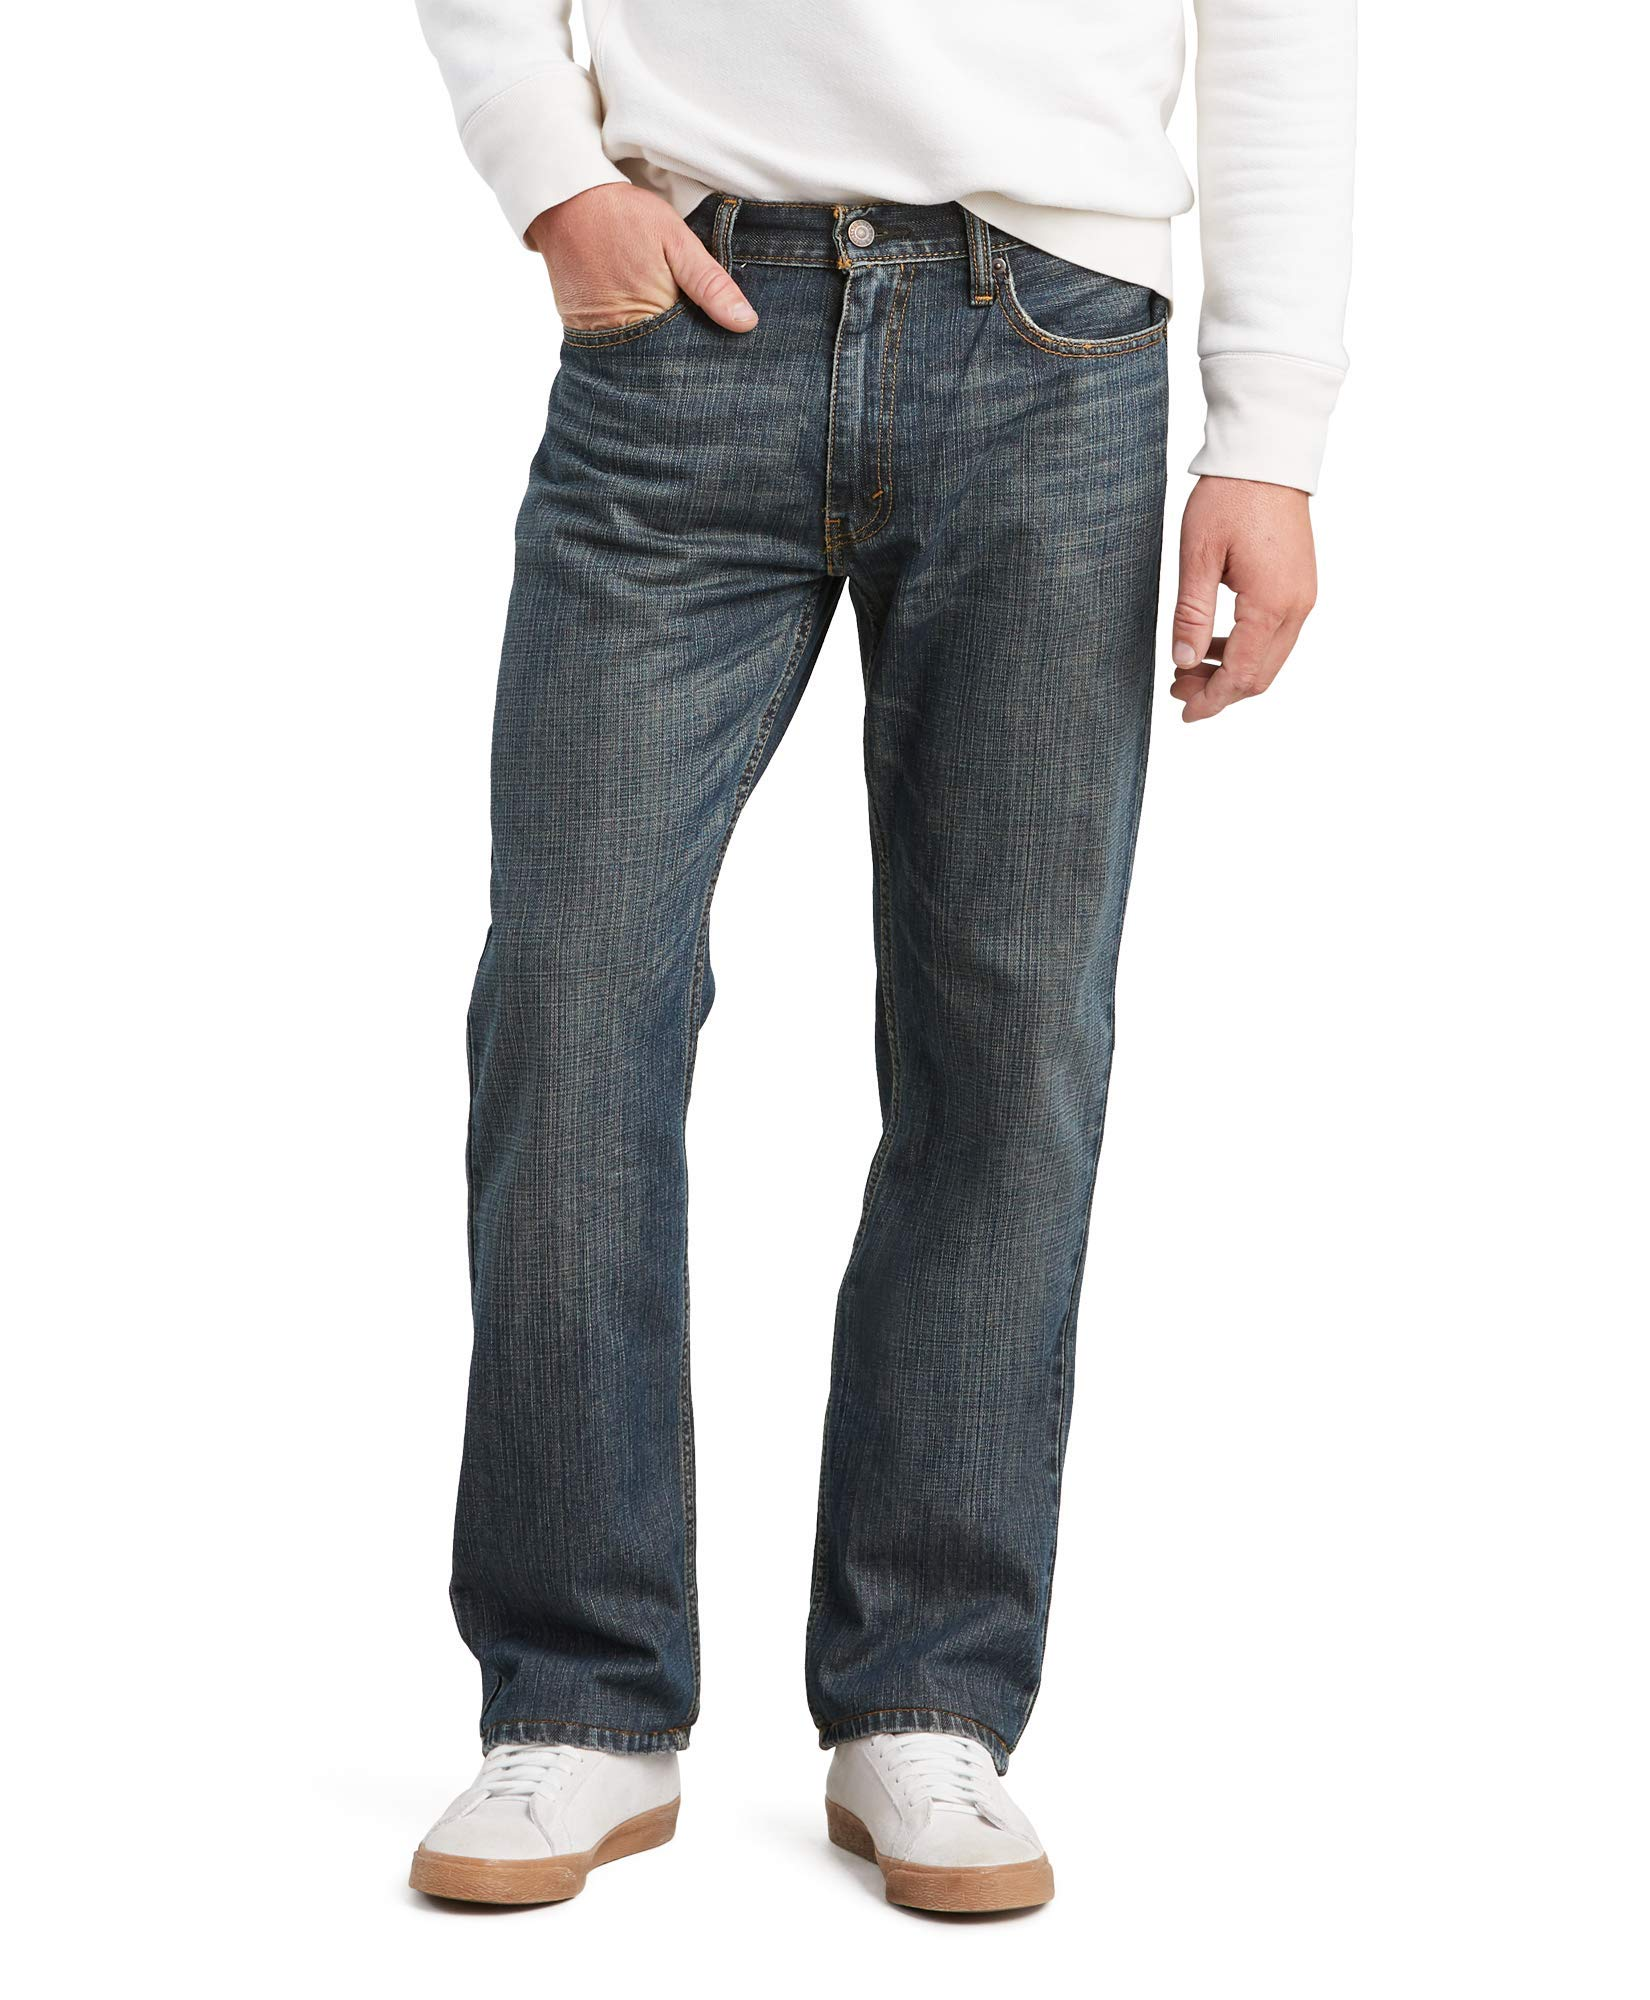 Levi's Men's 559 Relaxed Straight Fit Jean - 34W x 34L - Range by Levi's